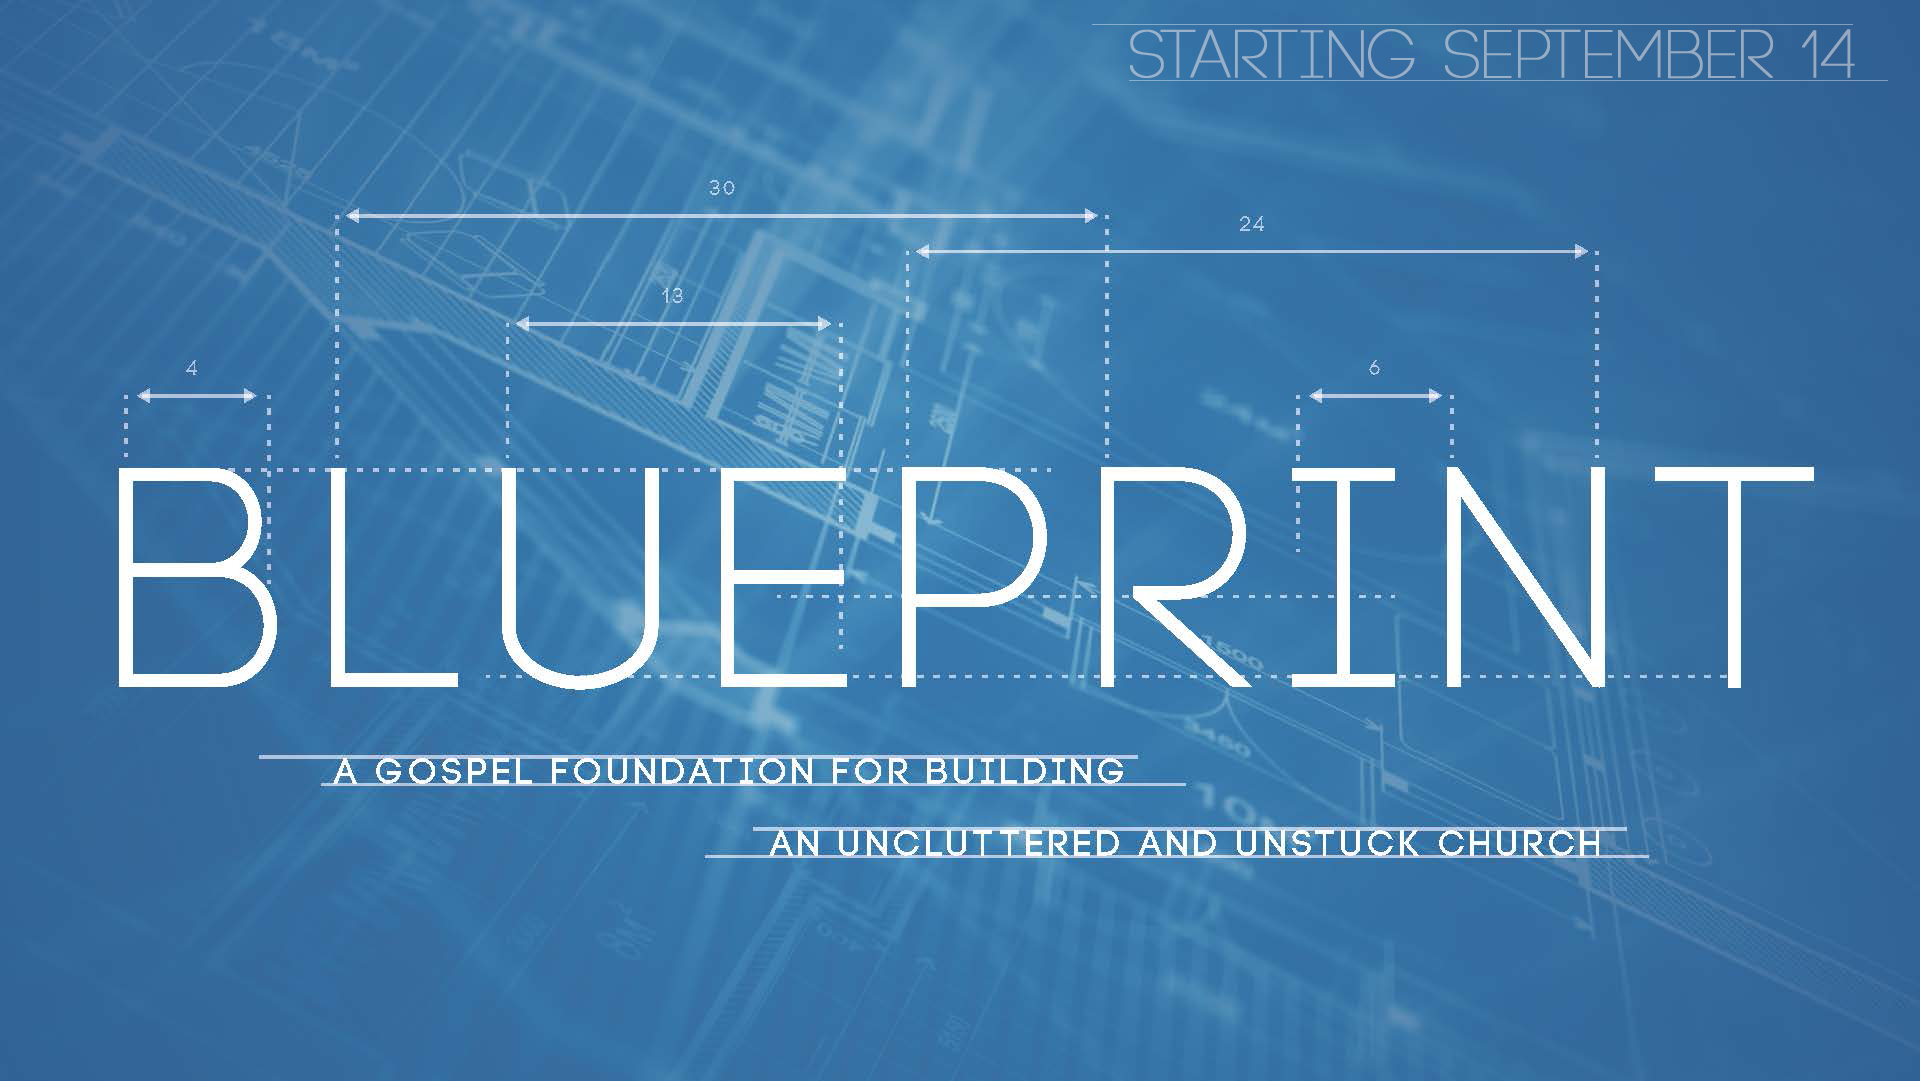 Blueprint engage equip blueprint bluprint startsept14 malvernweather